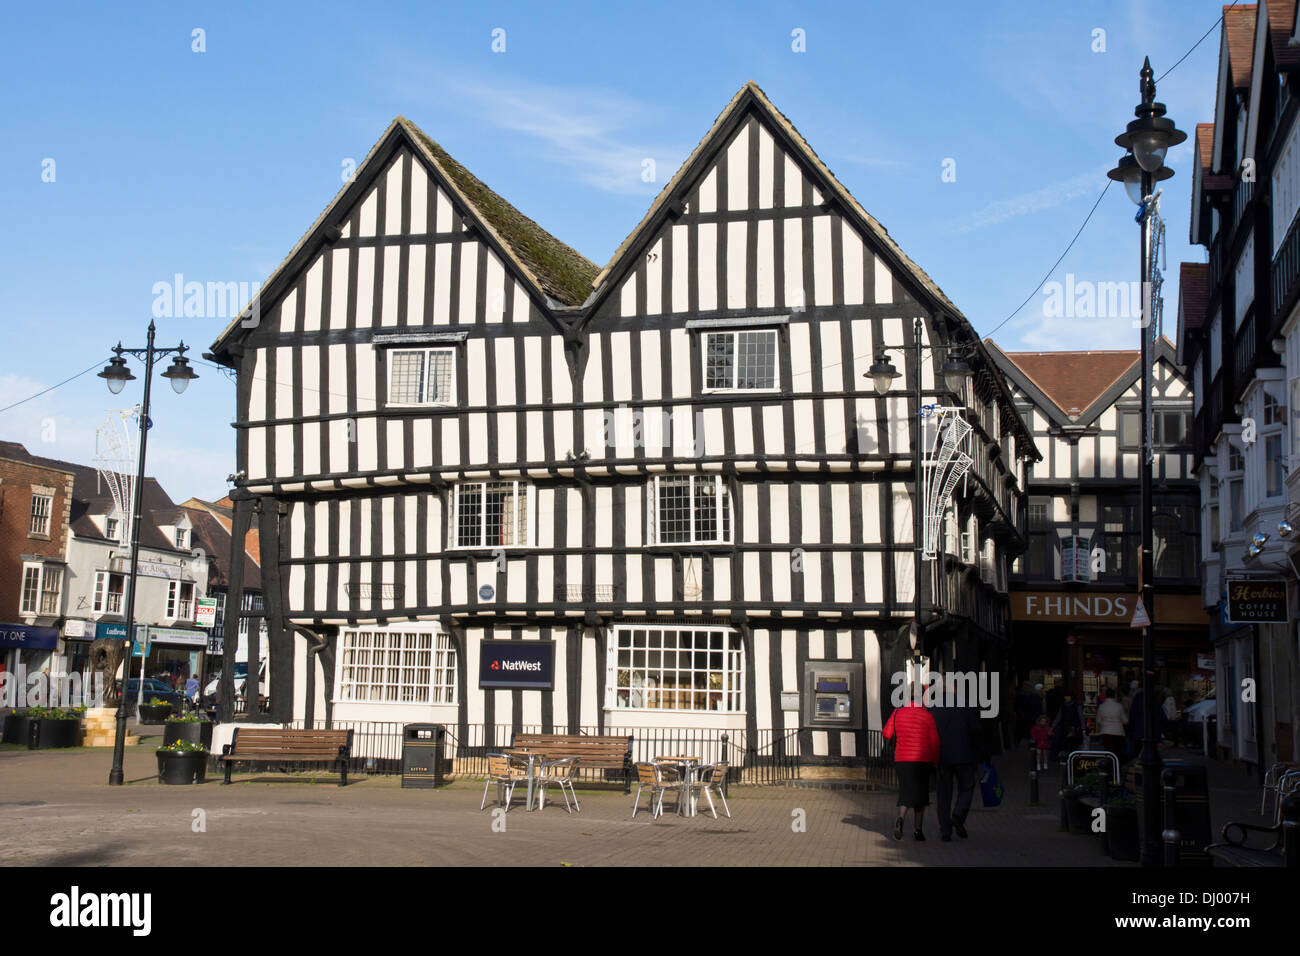 Evesham, a market town in Worcestershire England UK  The Merchants House and Natwest Bank - Stock Image